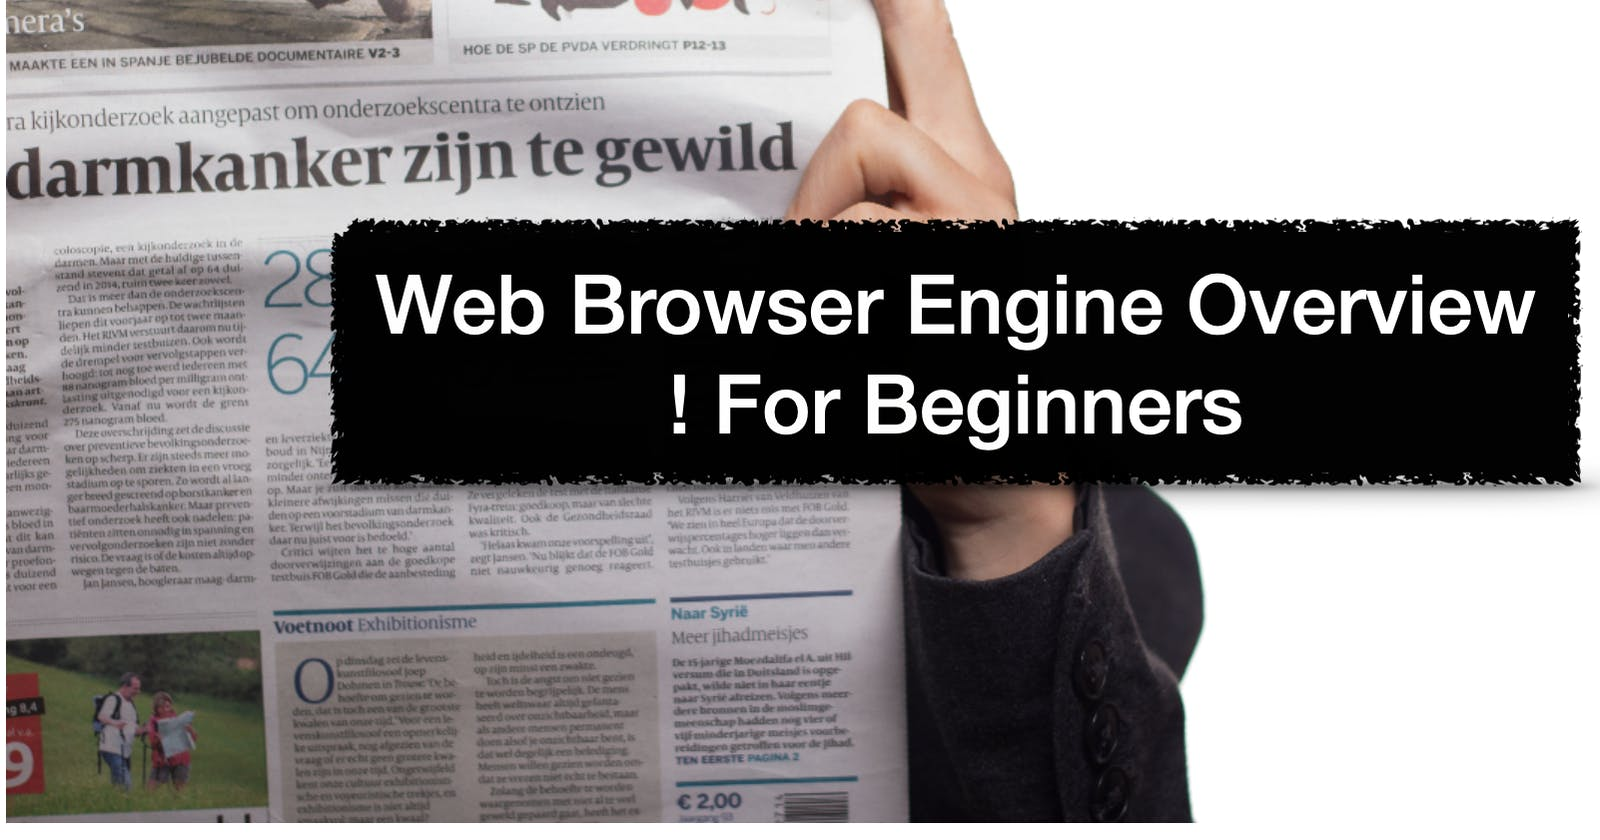 Web Browser Engine Overview : For Beginners